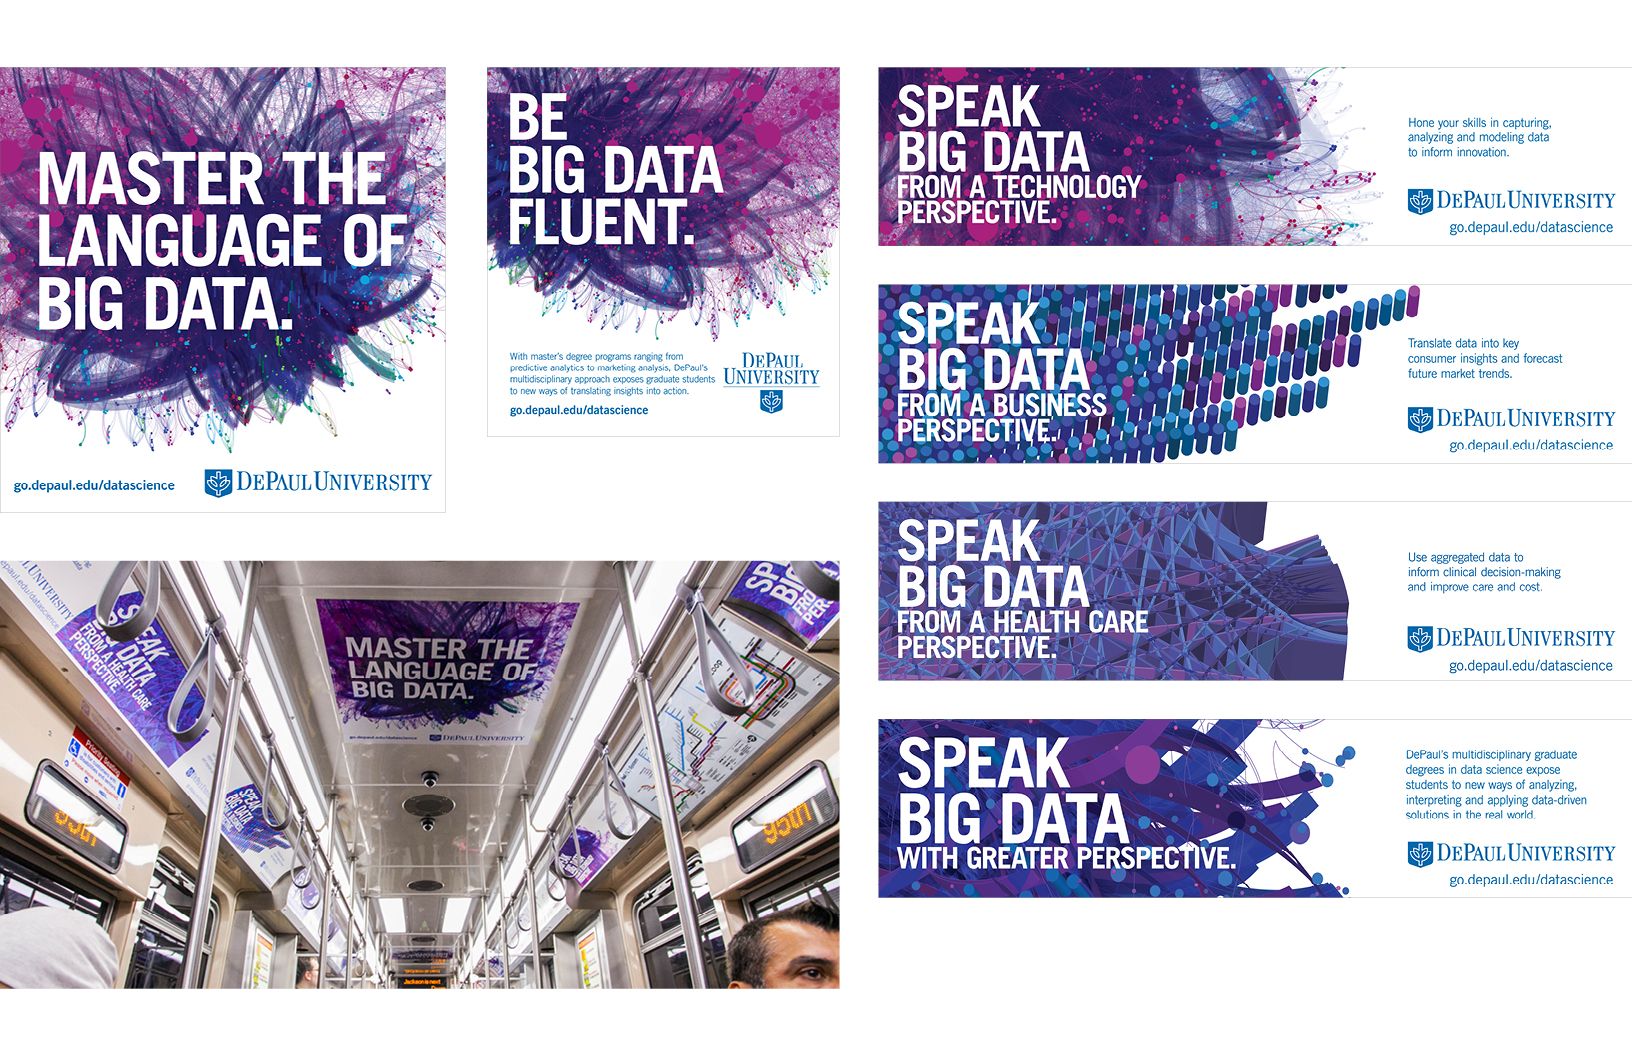 Big Data Full Campaign